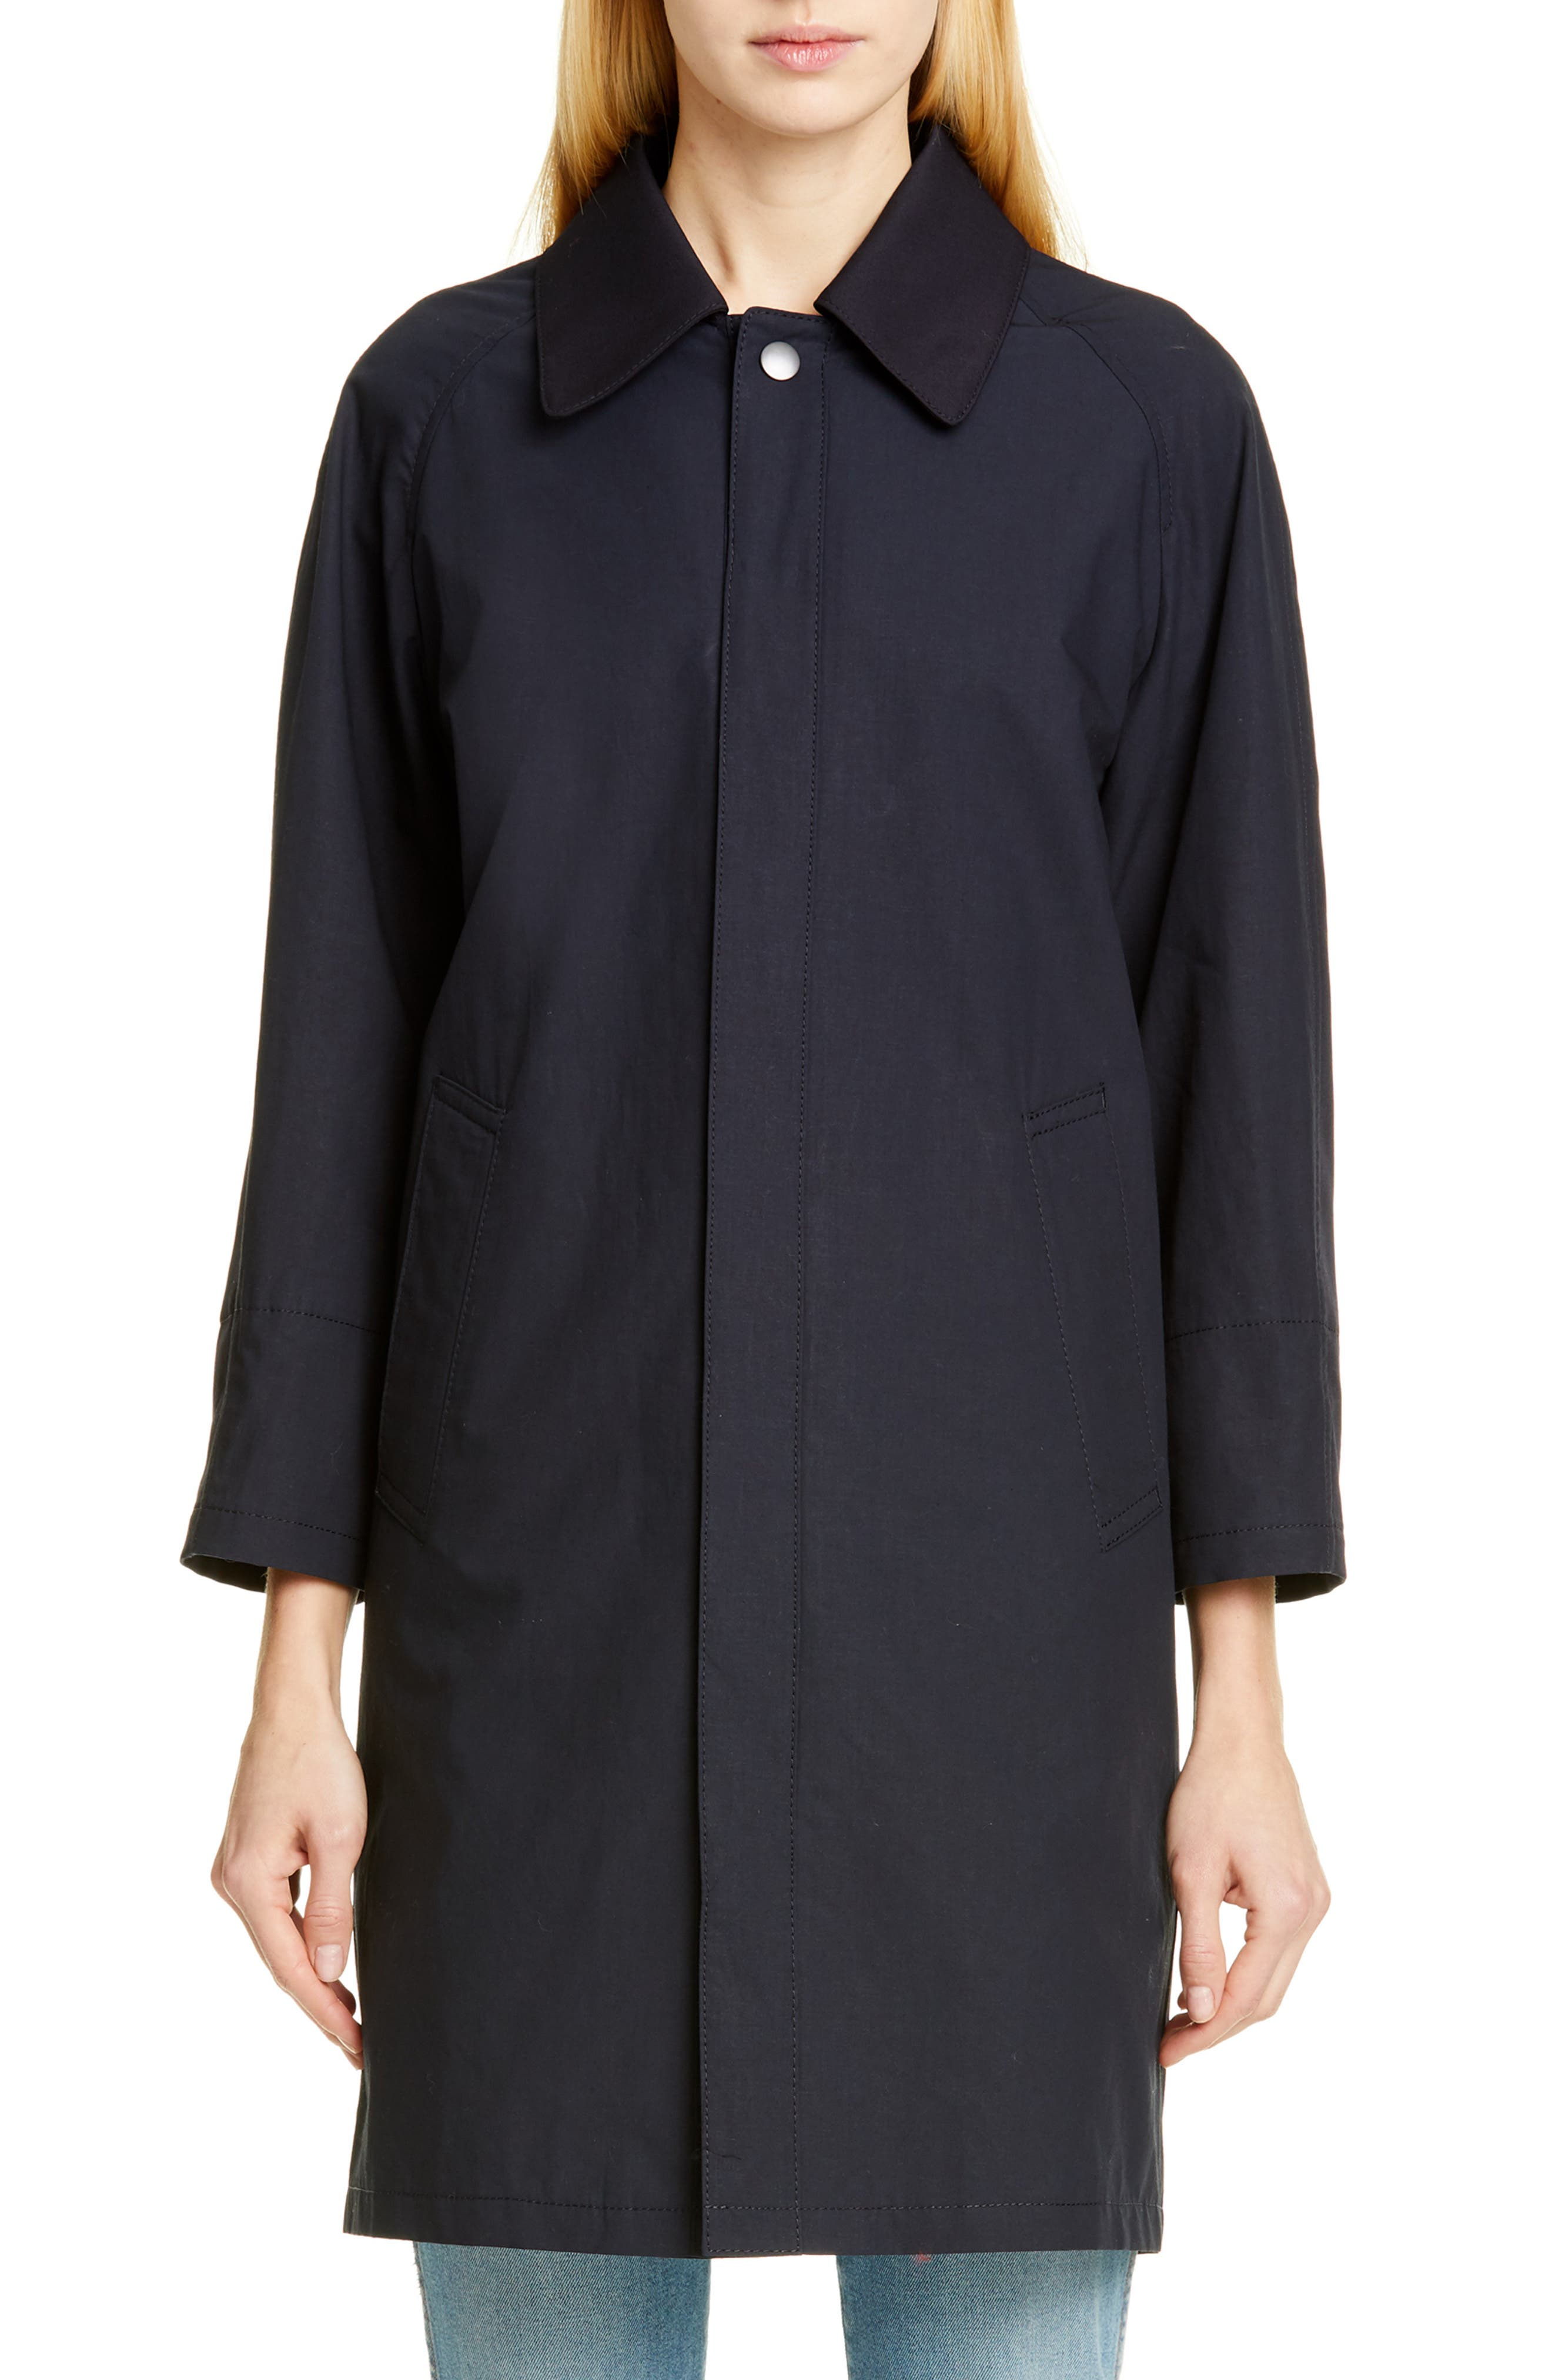 TRICOT COMME DES GARÇONS, Wool Cab Coat with Print Lining, Main thumbnail 1, color, NAVY